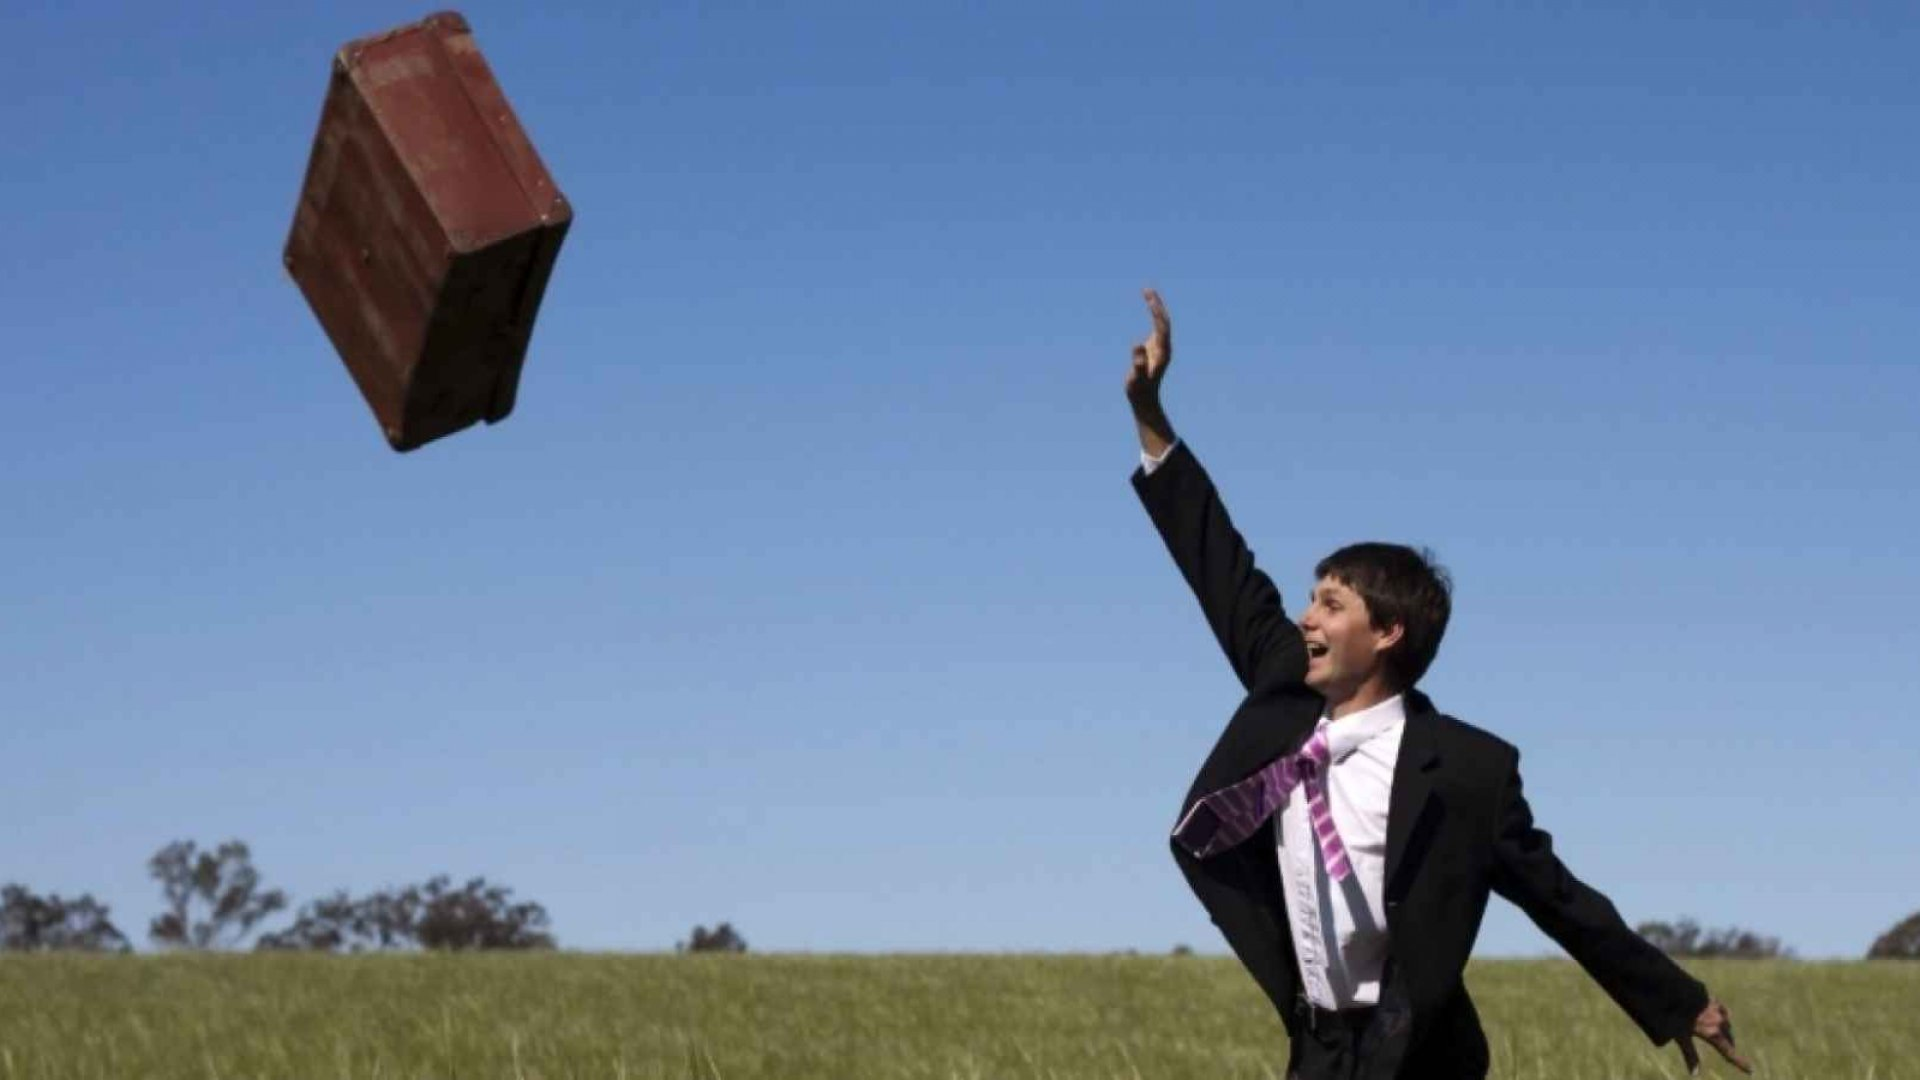 The 4-Step Life-Altering Practice That Will Make You a Great Leader